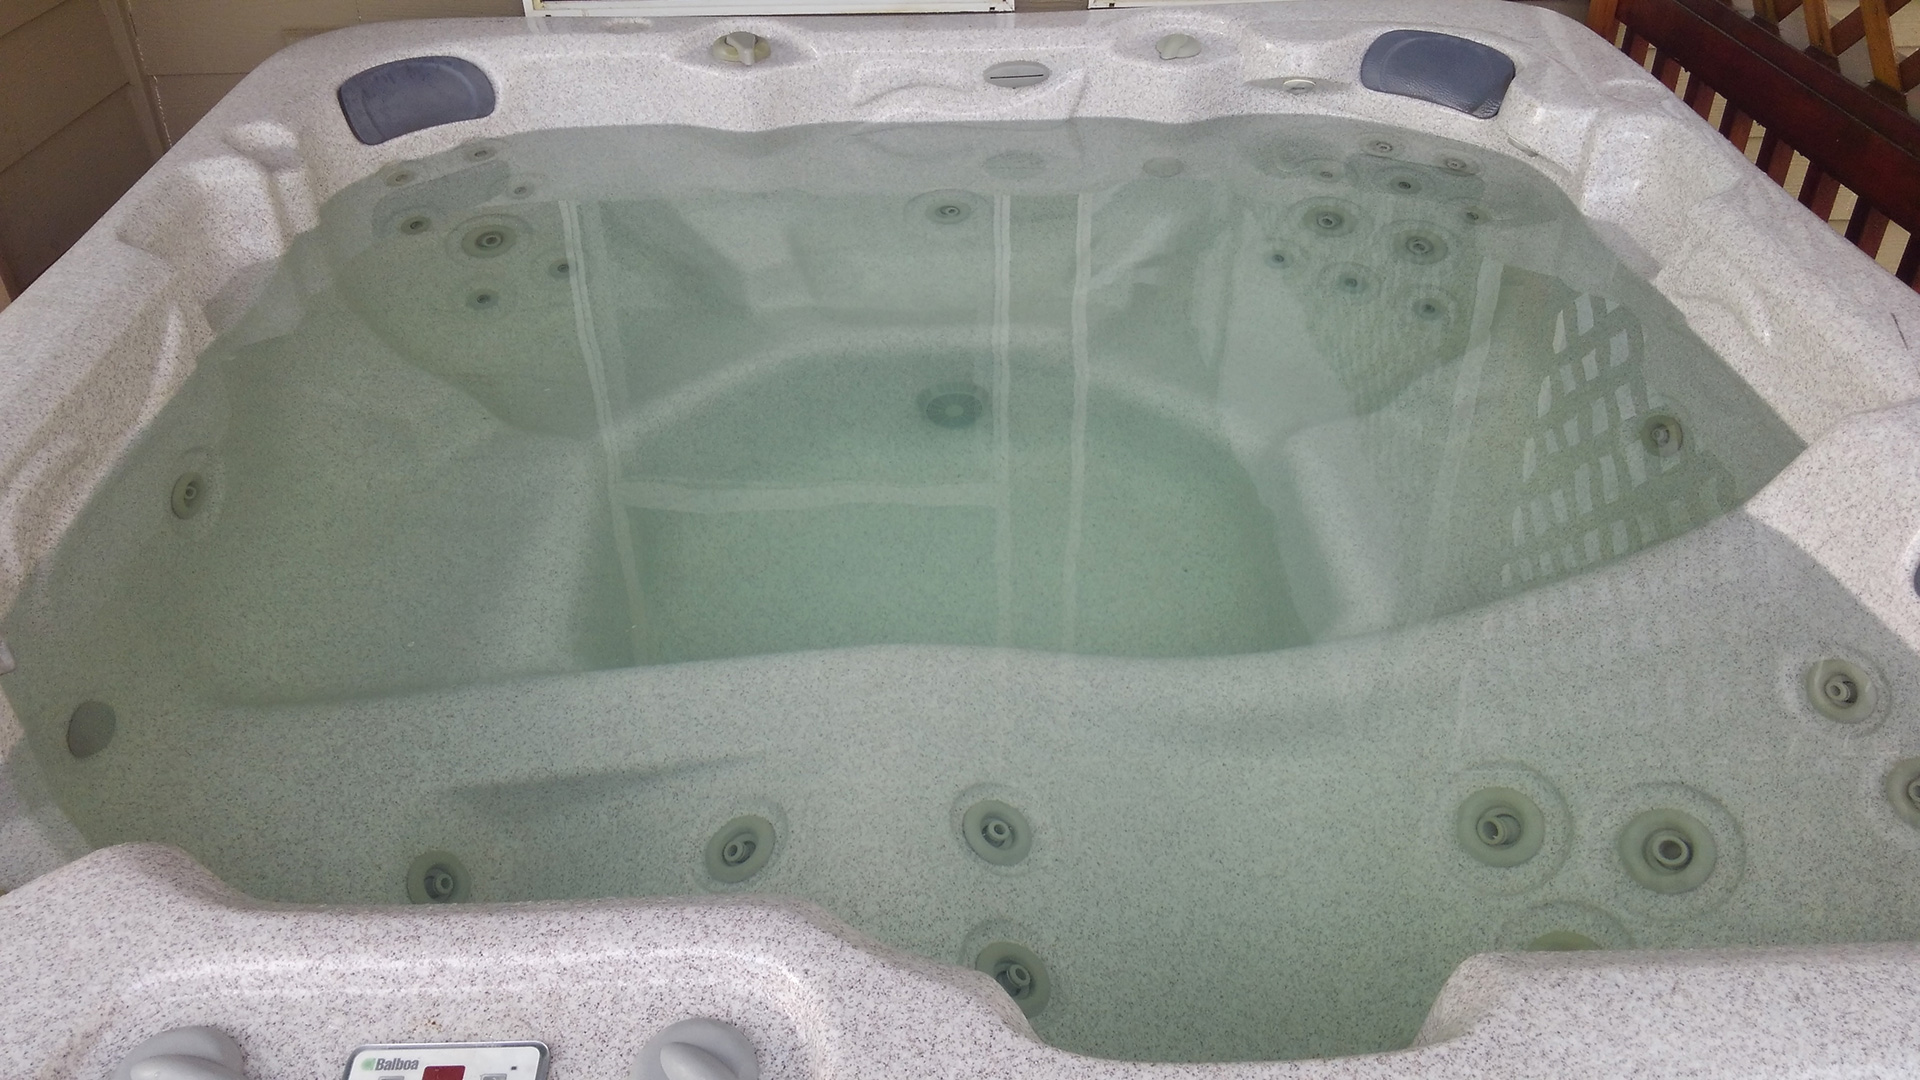 Before Hot Tub Cleaning by AllSpa